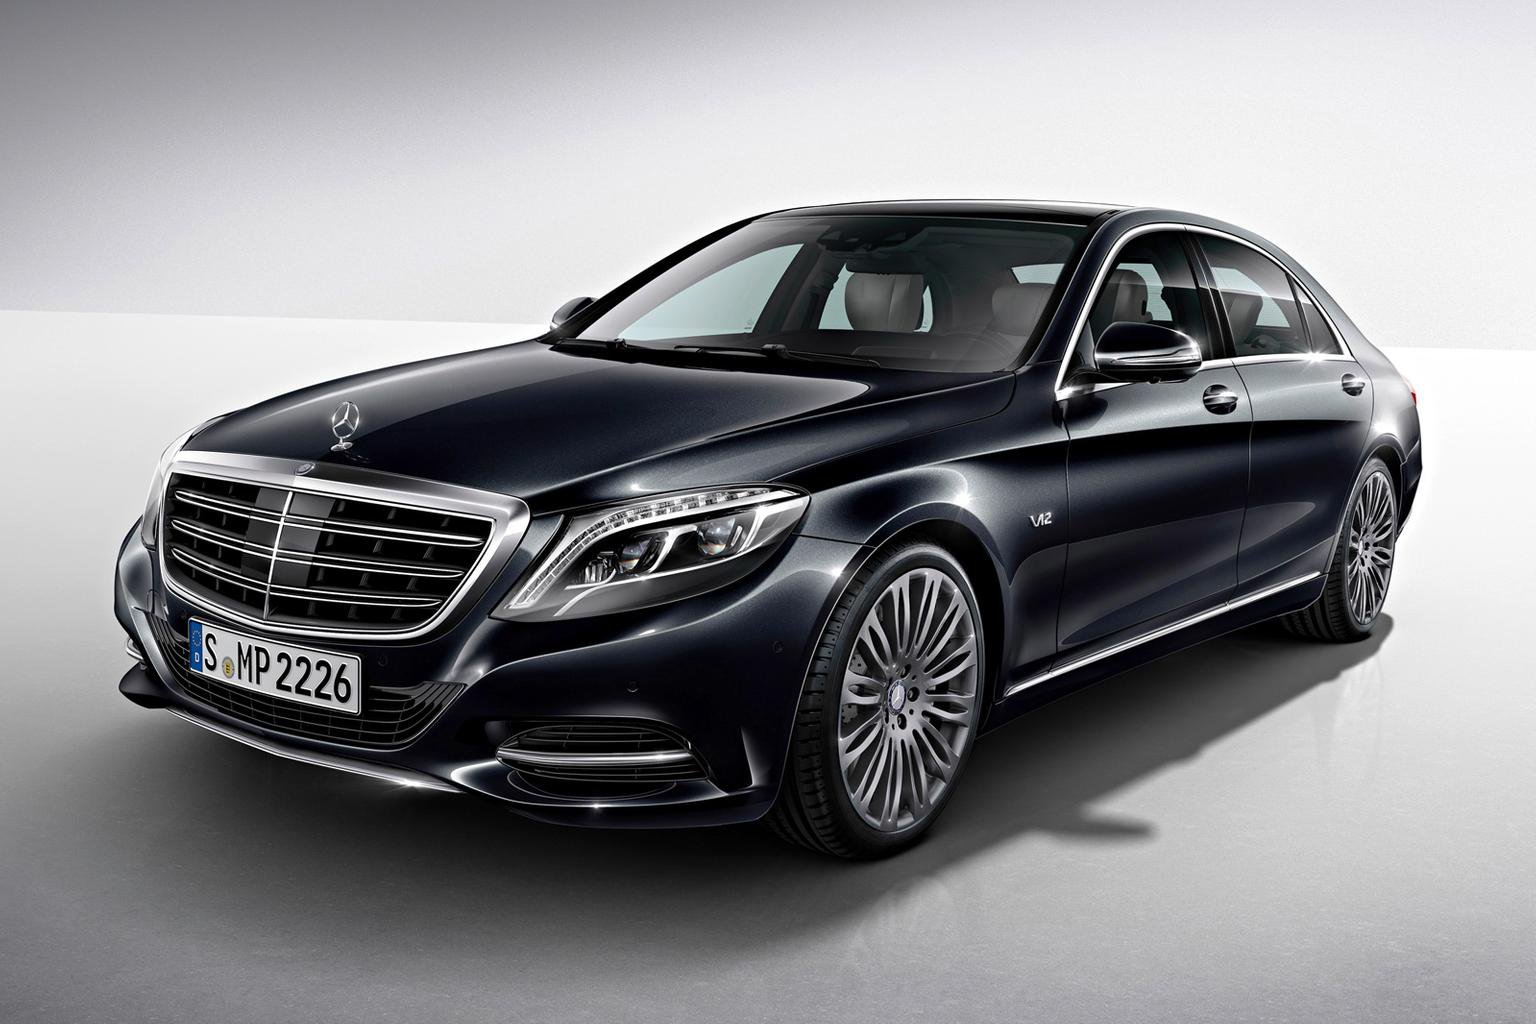 Mercedes launches new V12 S600 limo